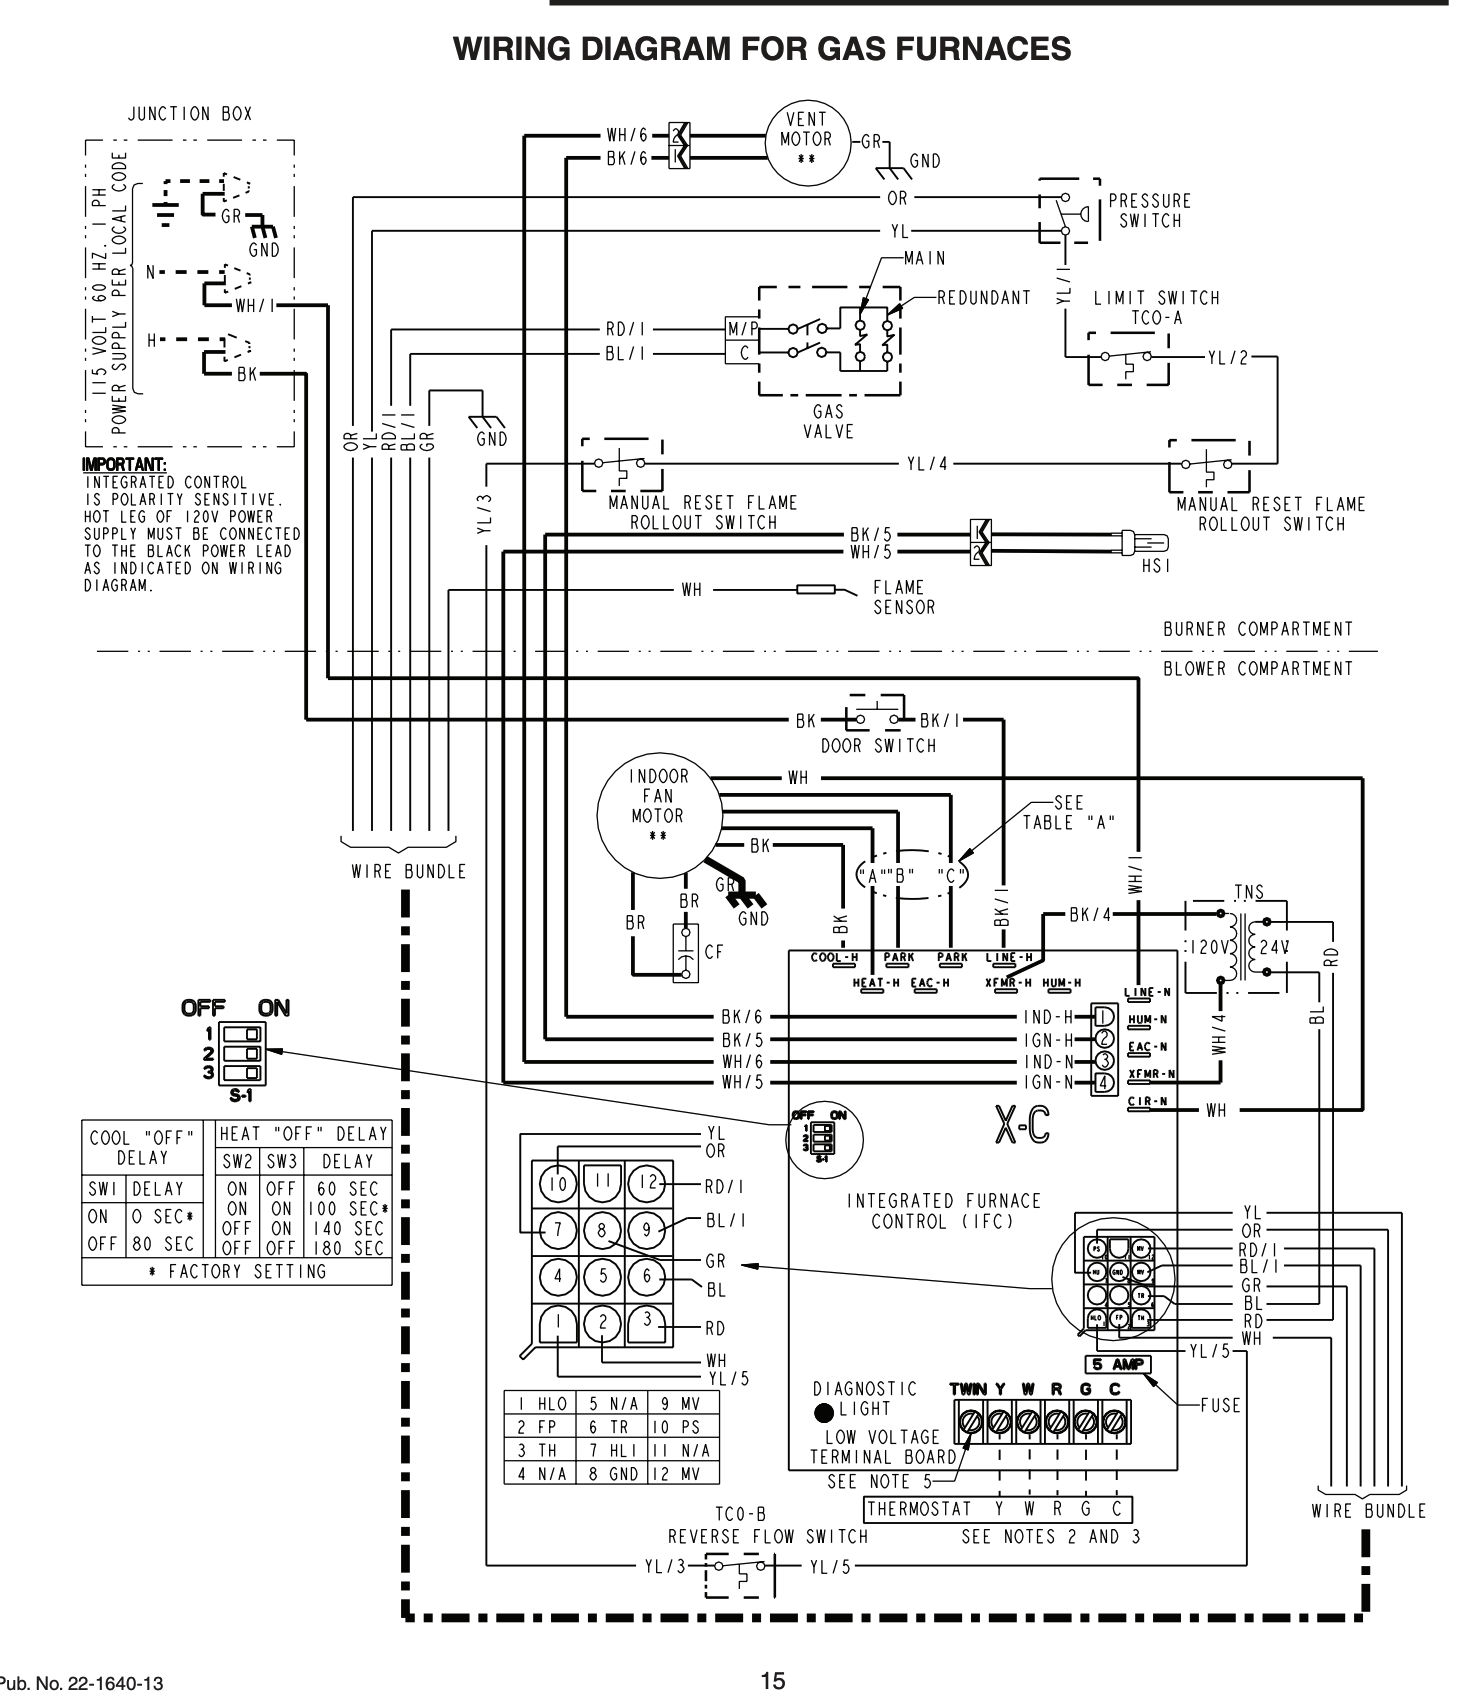 service wiring diagram york heat pump service manual wiring diagram e11 service entrance panel wiring diagram york heat pump service manual wiring